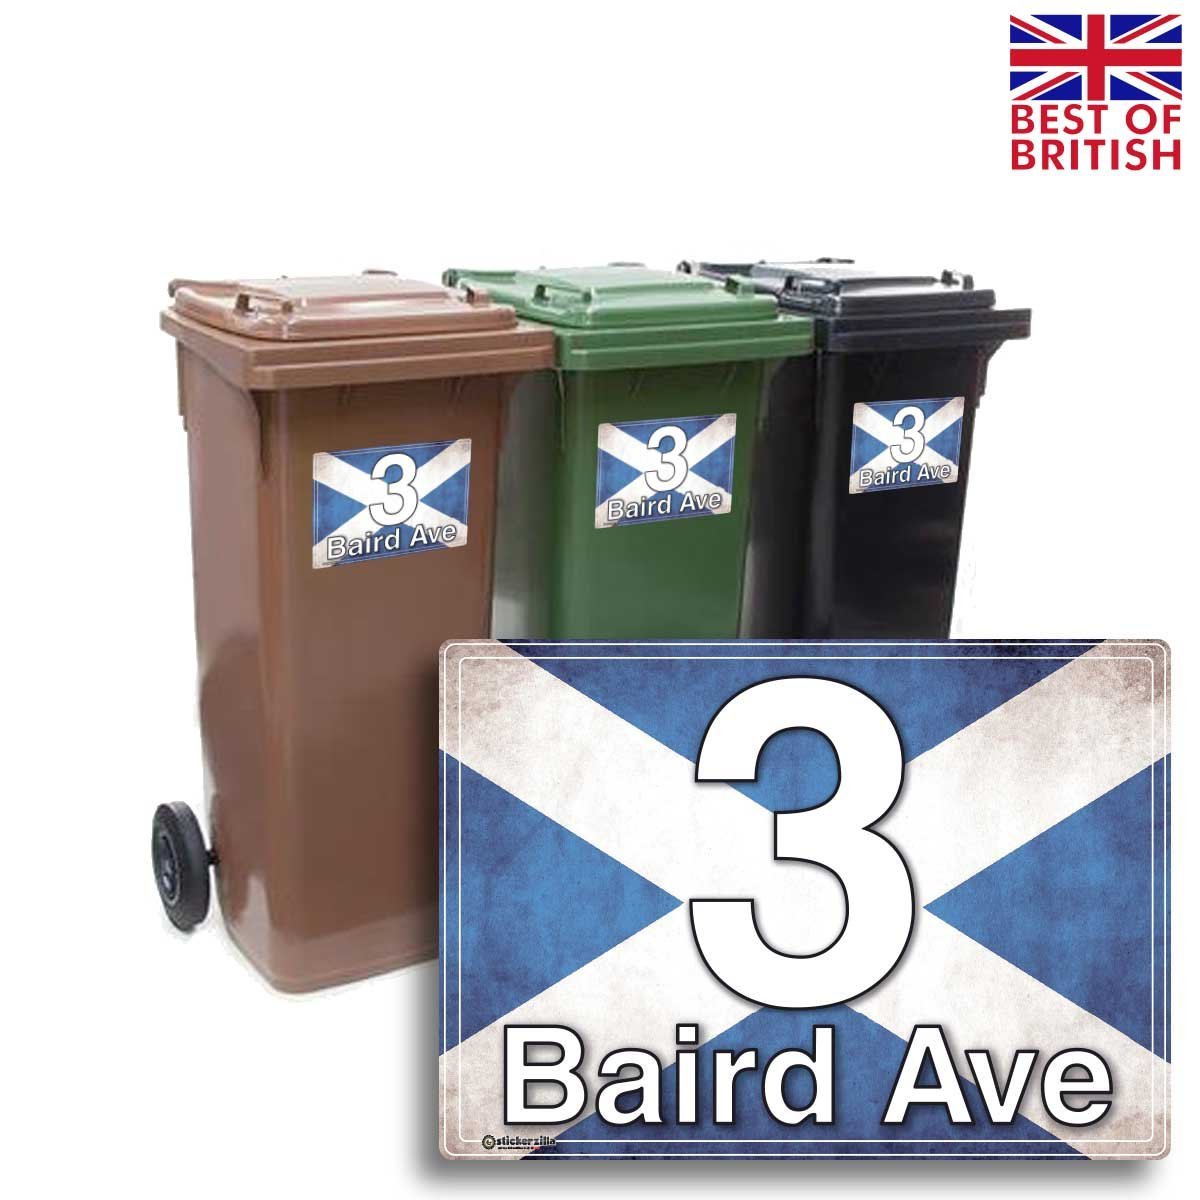 A5 4 x pack scottish flag rustic style personalised wheelie bin sticker vinyl labels with house number street name